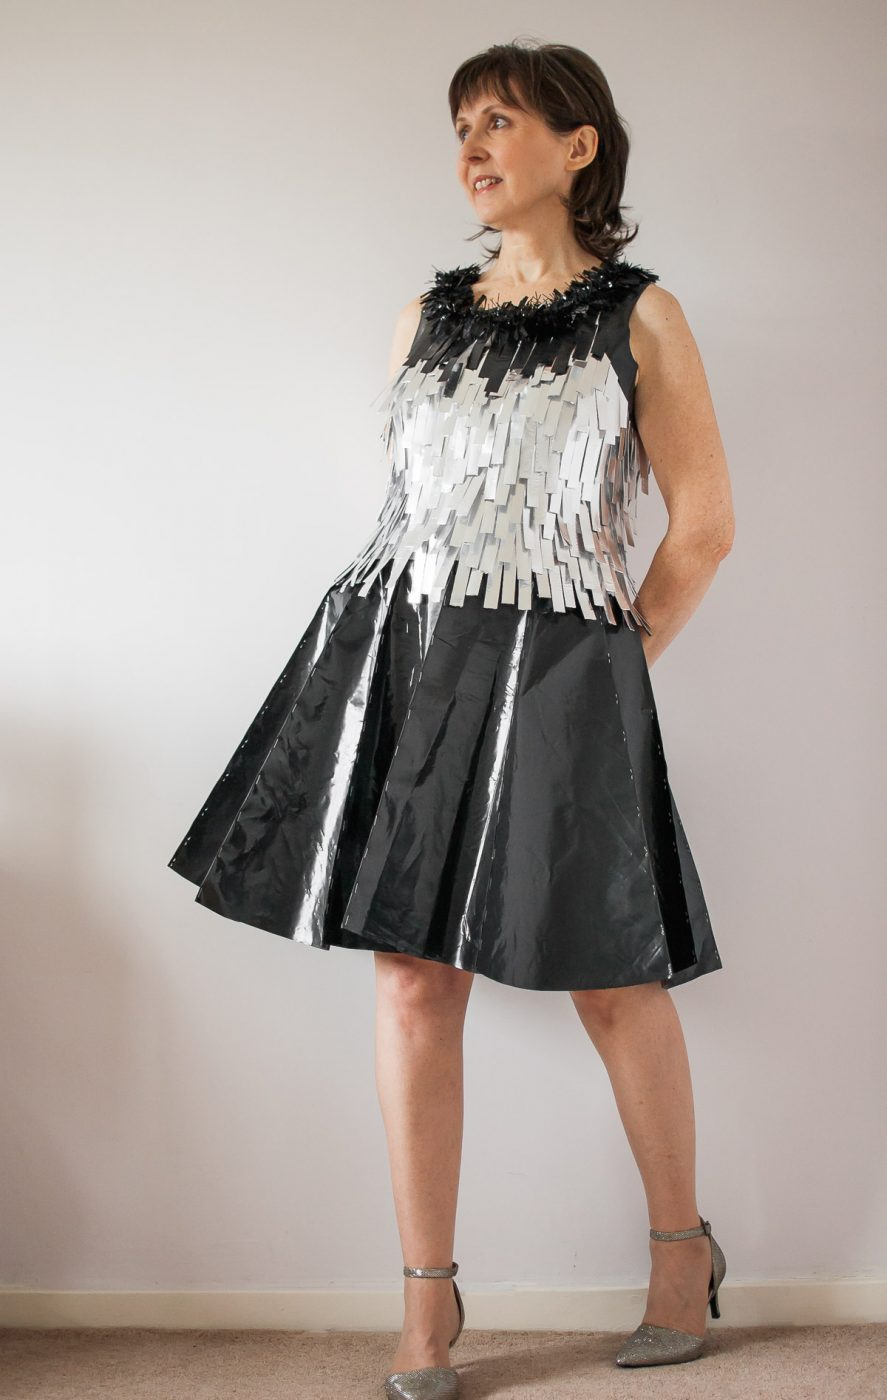 An Unconventional Cocktail Outfit